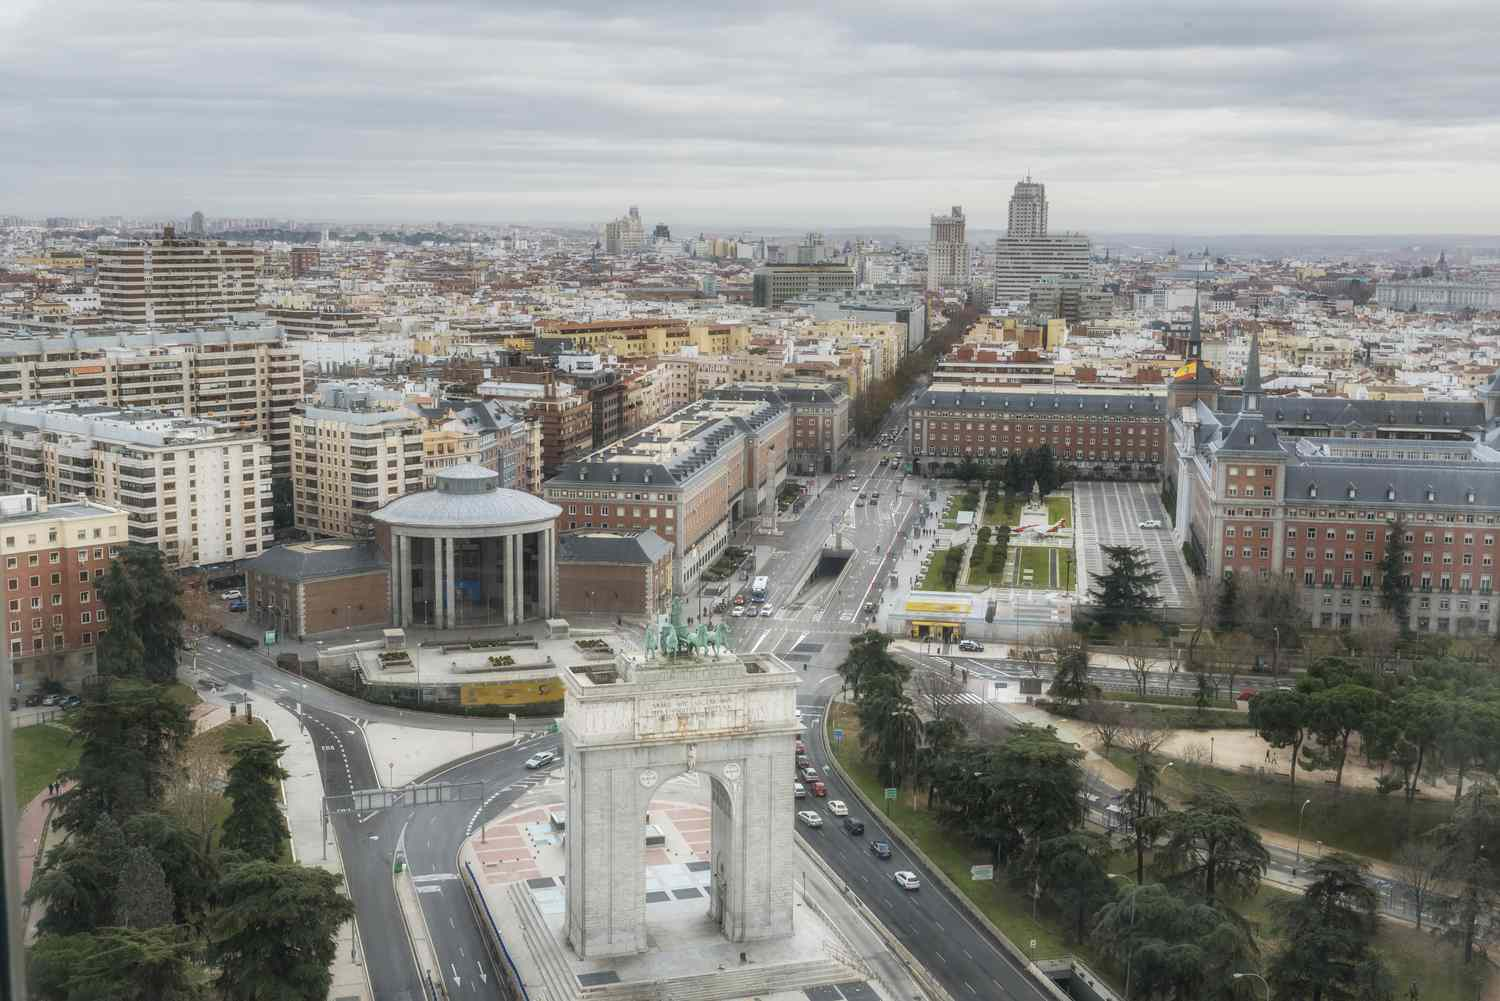 Aerial view of the Moncloa neighborhood in Madrid, Spain